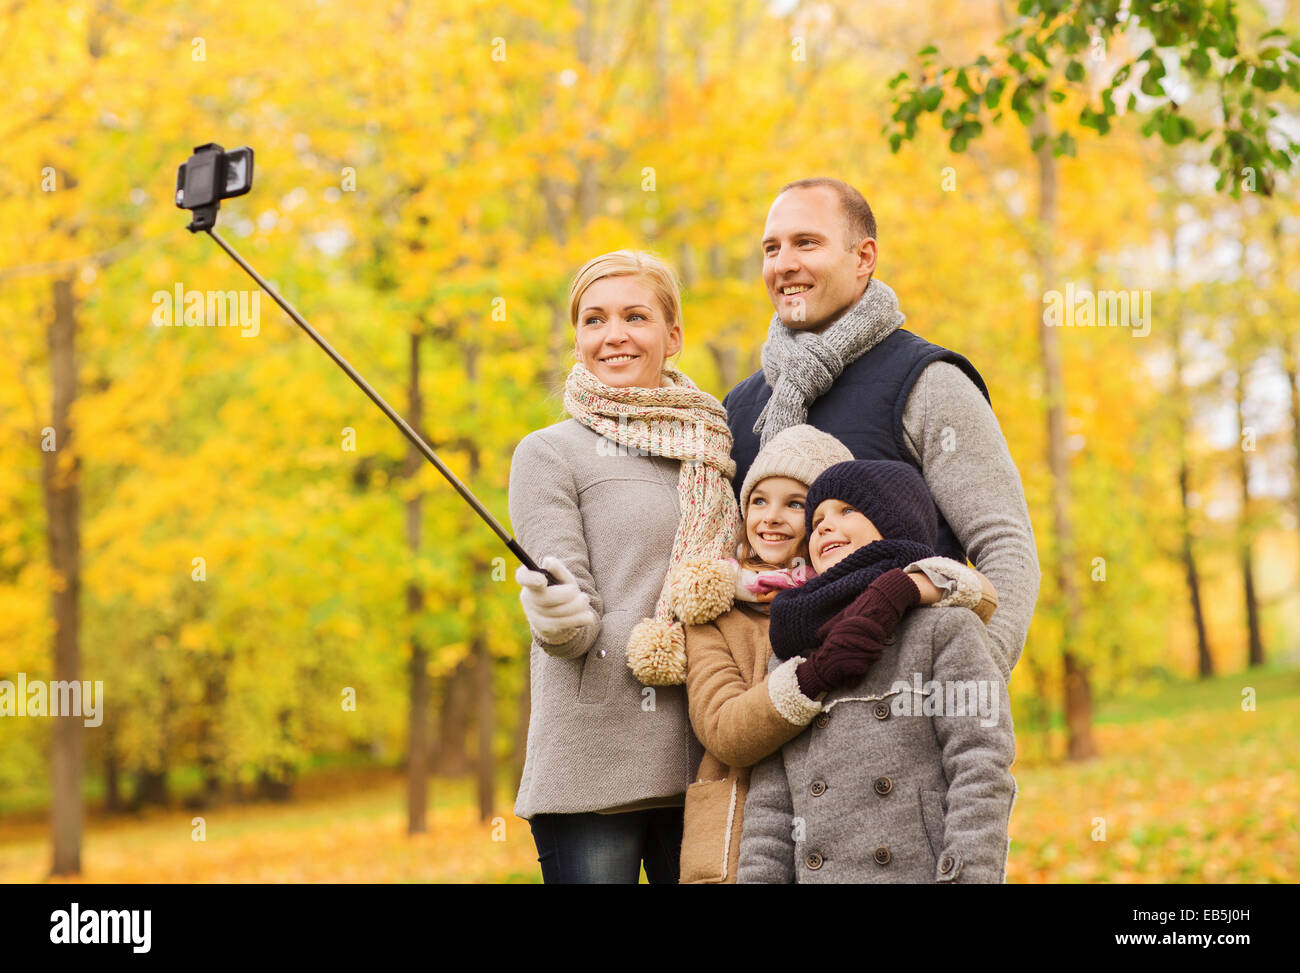 happy family with smartphone and monopod in park - Stock Image